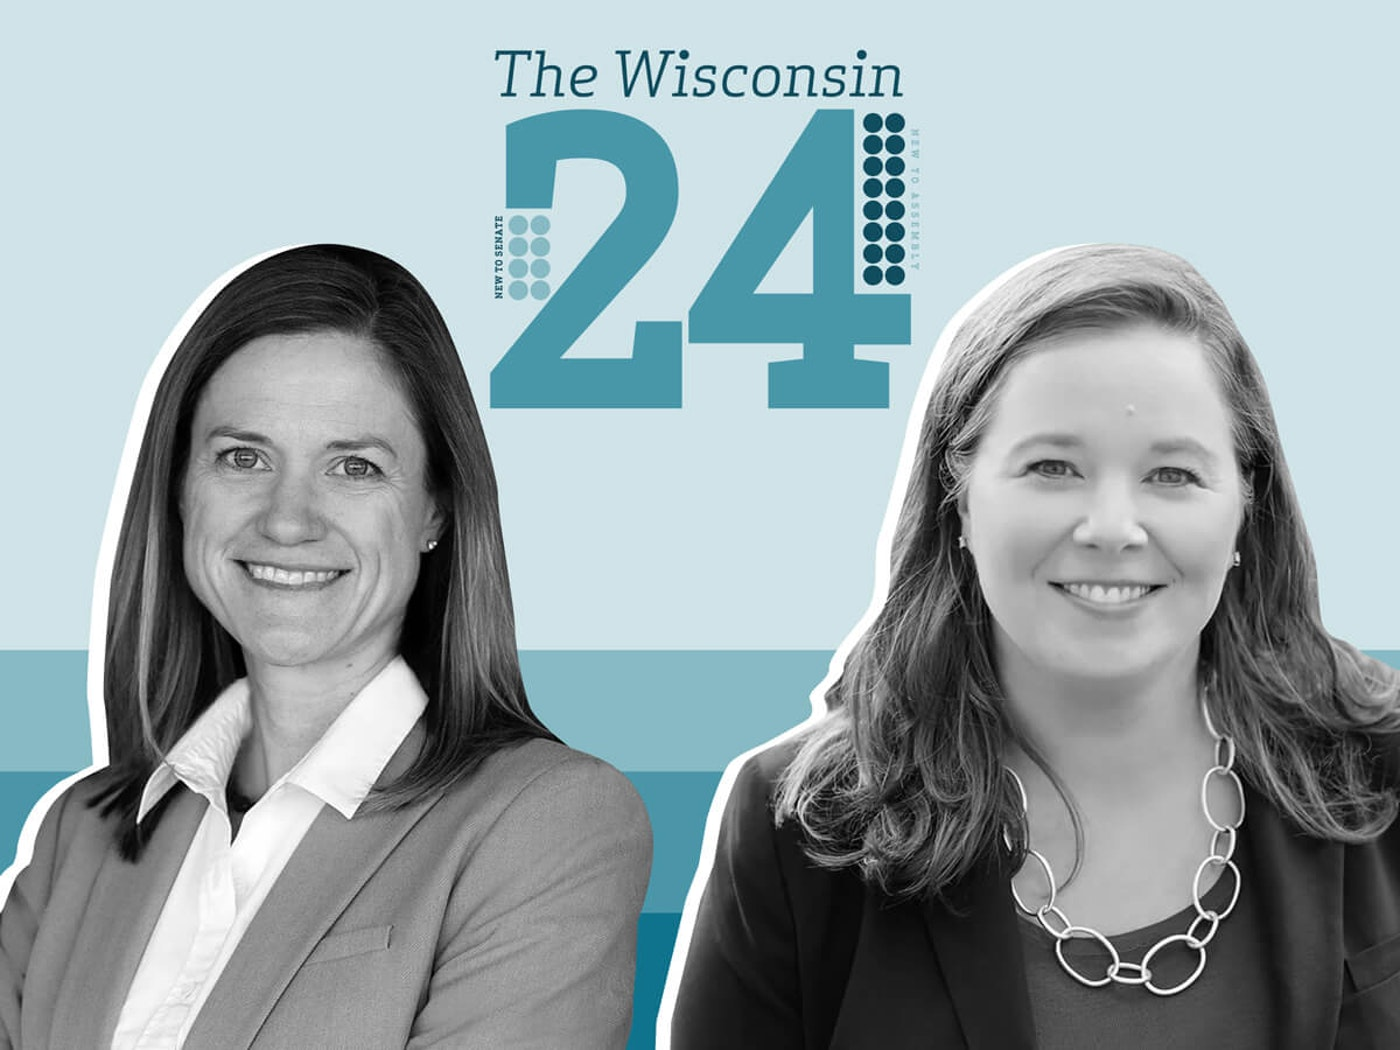 Incoming Democratic members of the Assembly Deb Andraca of Whitefish Bay and Sara Rodriguez of Brookfield. (Graphic illustration by Morgaine Ford-Workman)